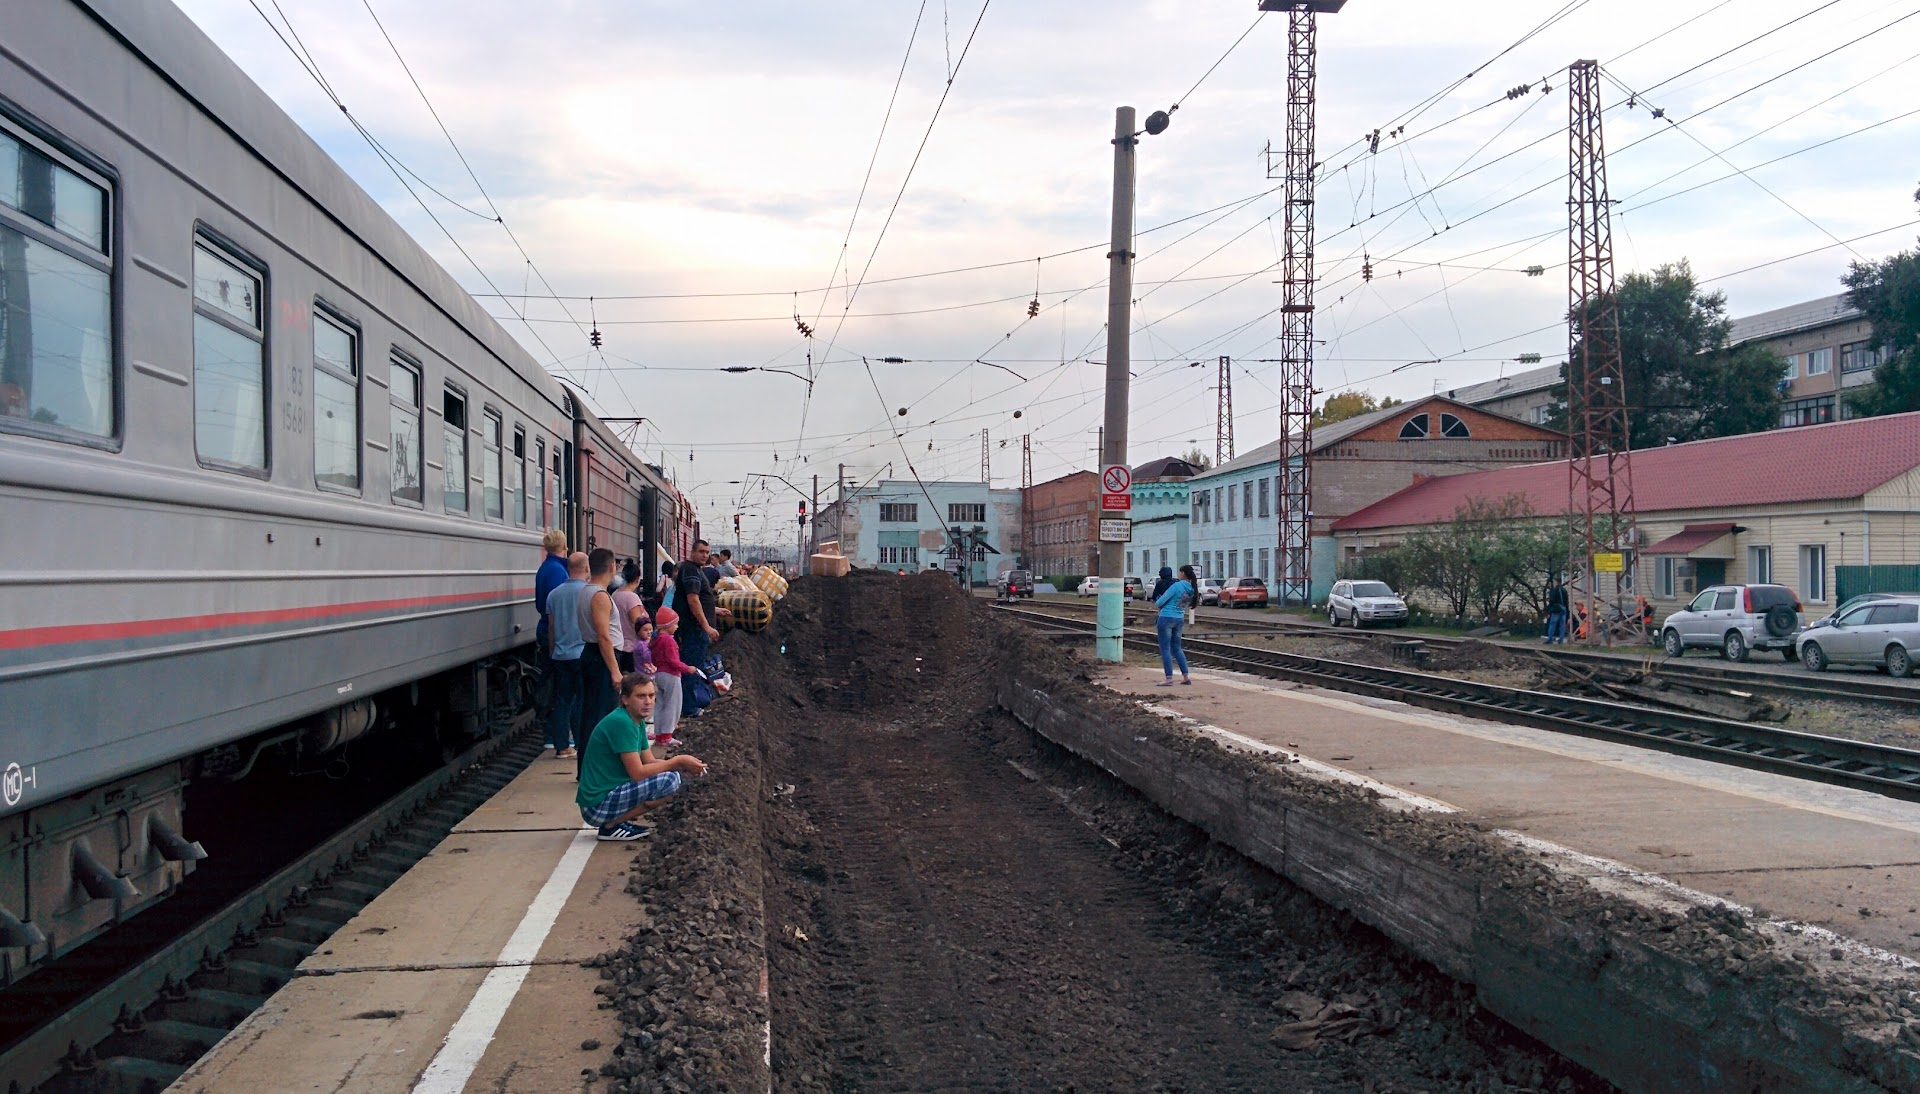 Railroad work in progress at the Ussuriysk Station